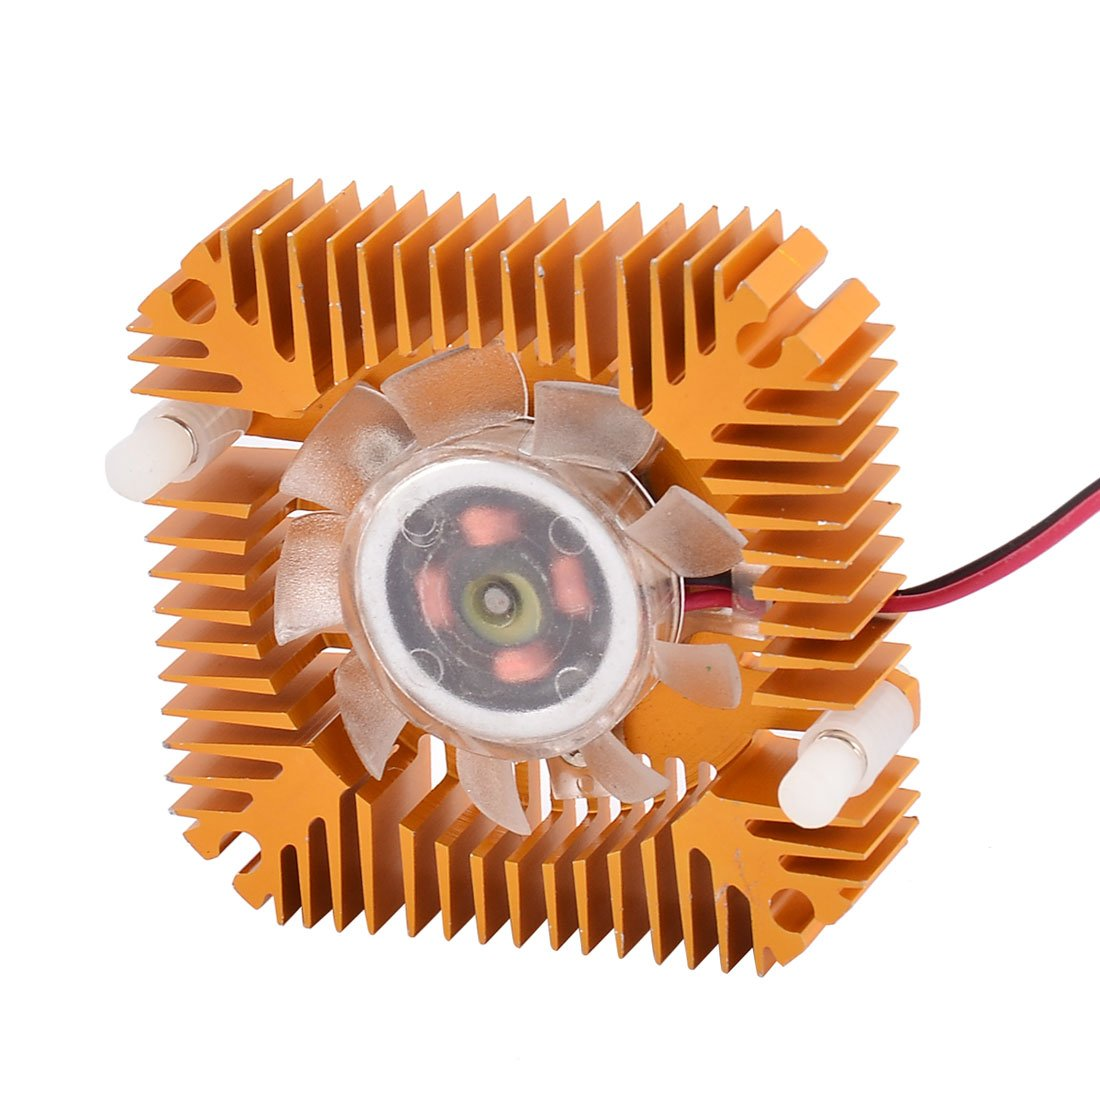 uxcell Copper Plated 55mm 2 Terminal VGA Video Card Heatsink Cooling Fan